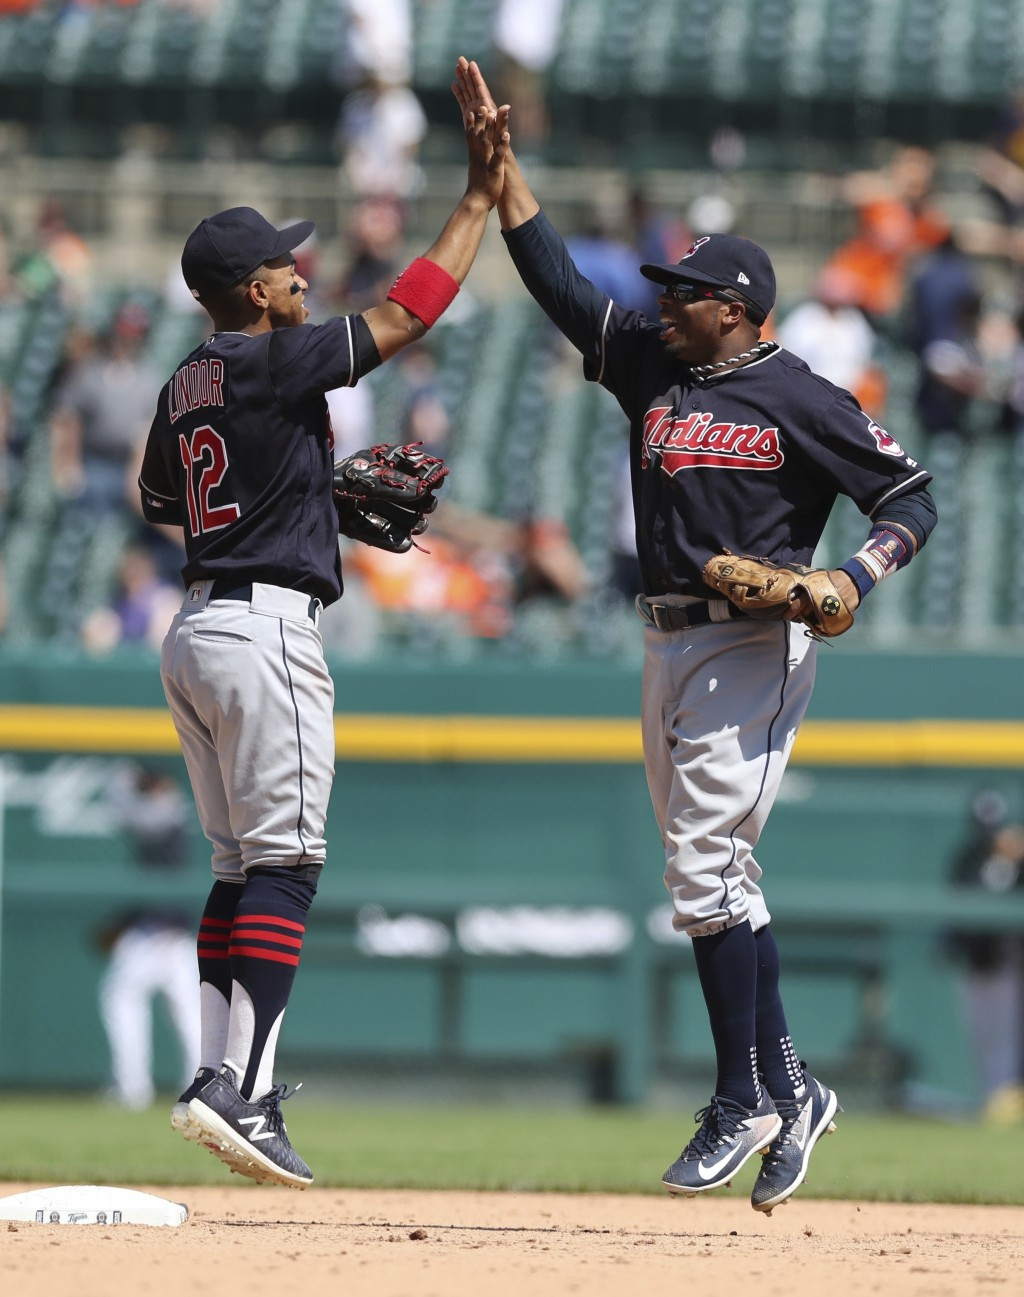 Cleveland Indians shortstop Francisco Lindor (12) and center fielder Rajai Davis celebrate the team's 6-0 win over the Detroit Tigers after a baseball